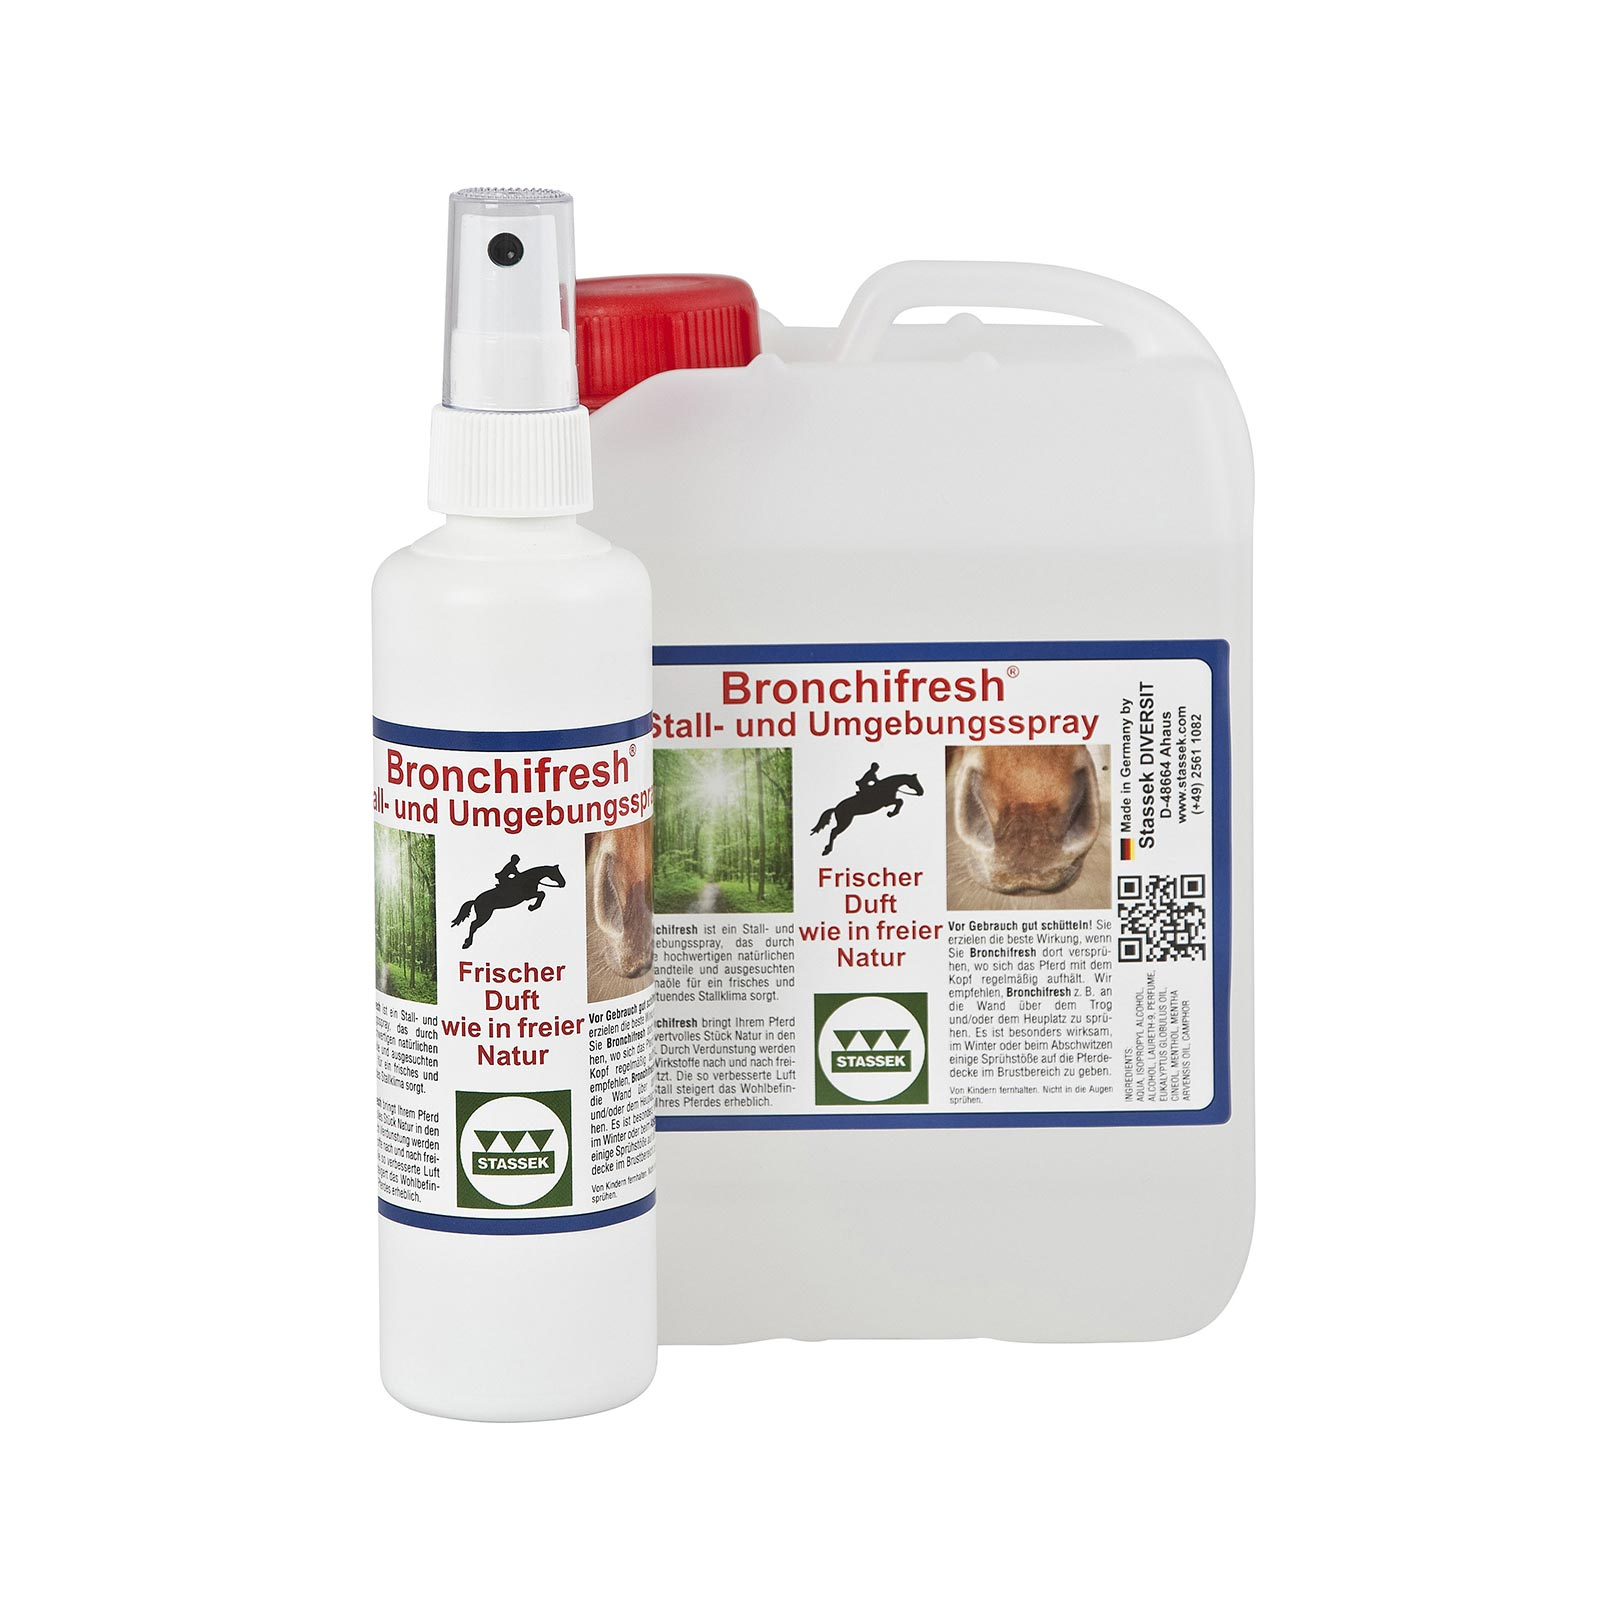 Stassek Bronchifresh Stallspray 2 liter